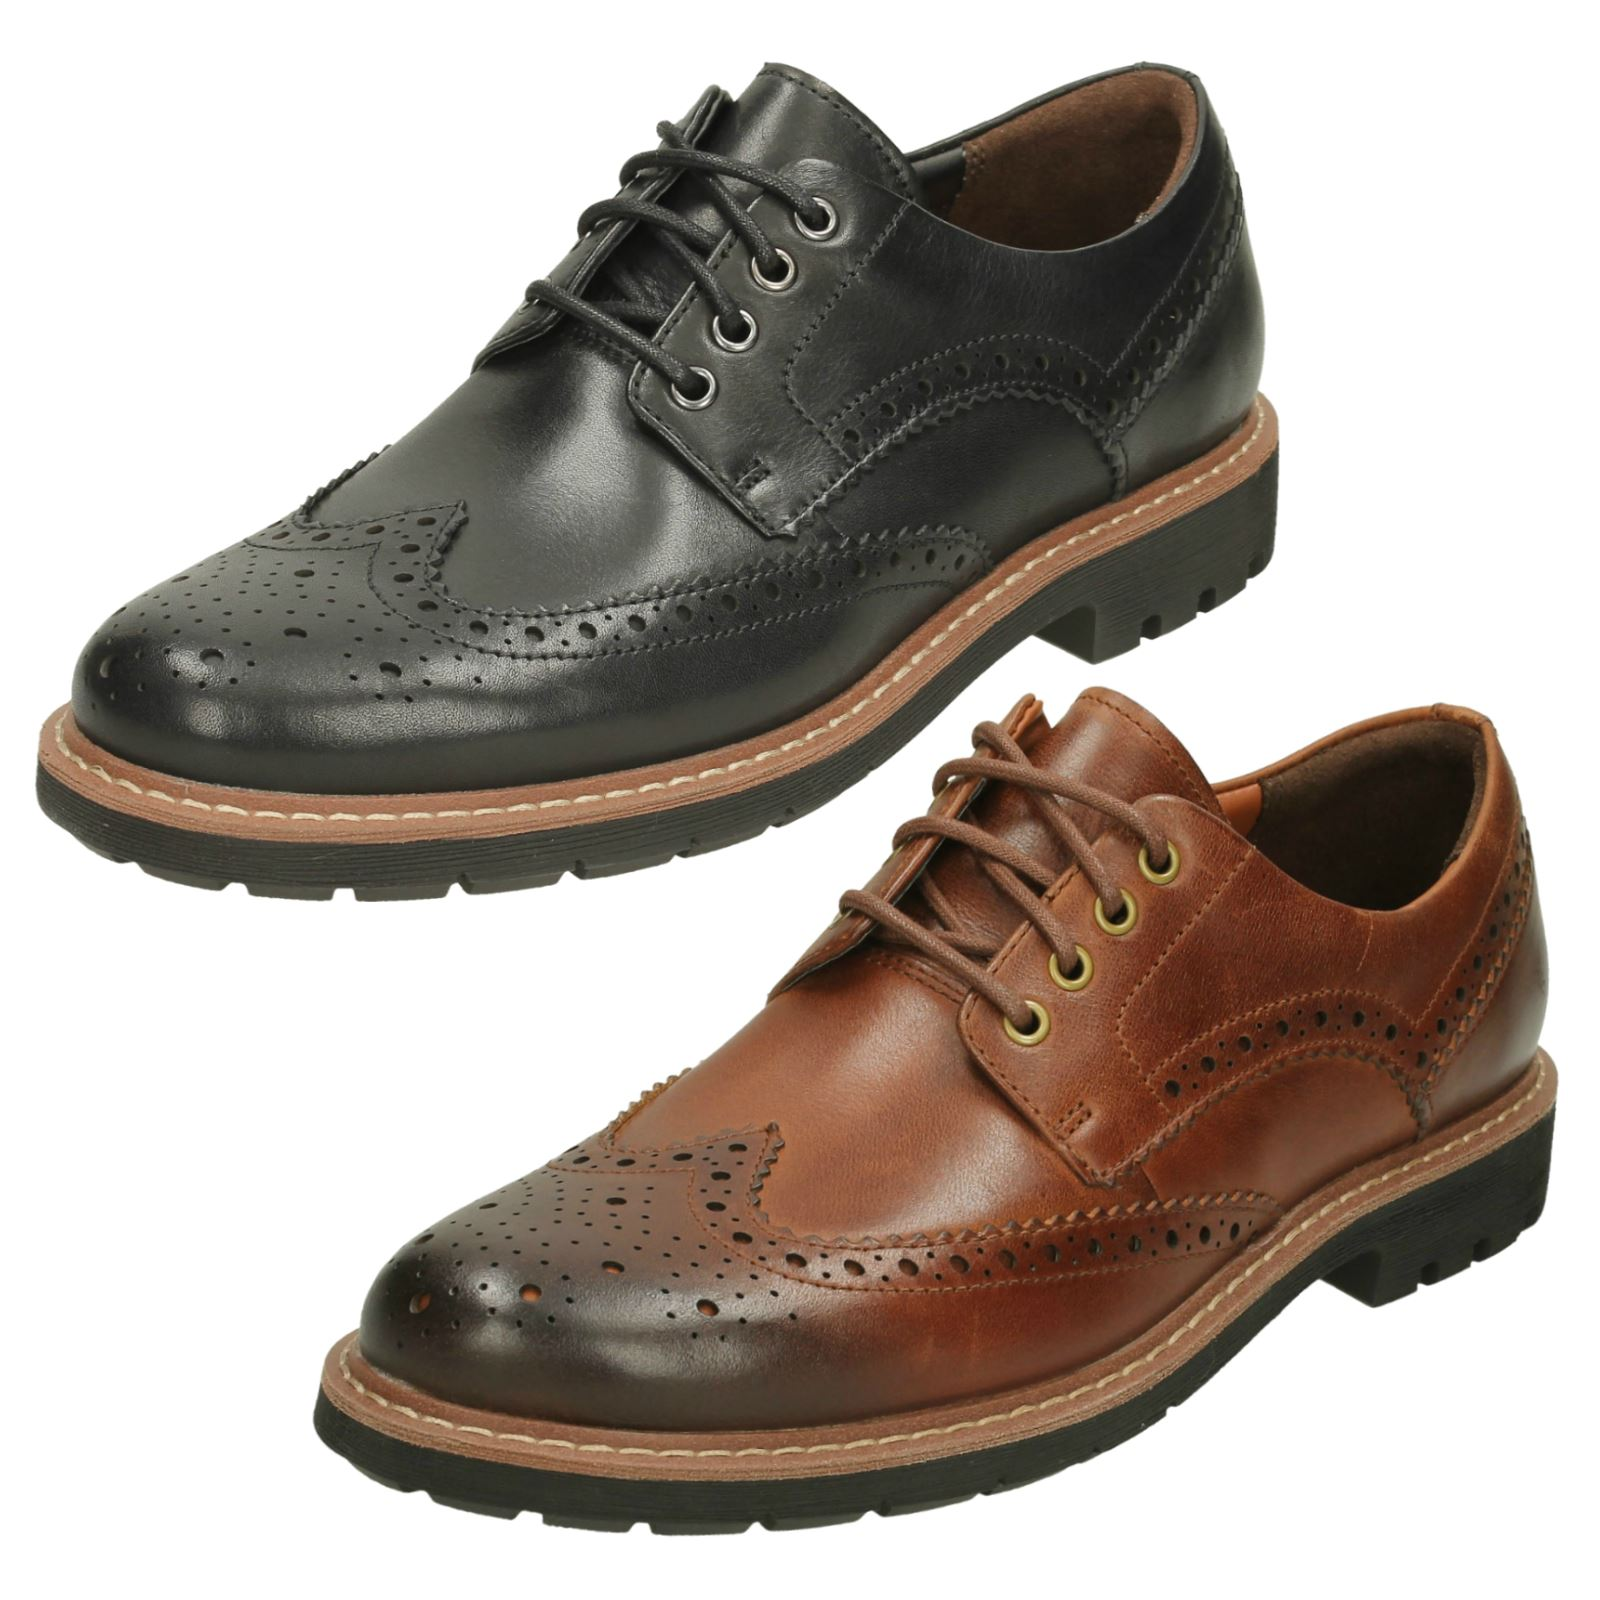 Up Uomo Clarks Formal Lace Up  Leder Brogues Batcombe Wing fc3704